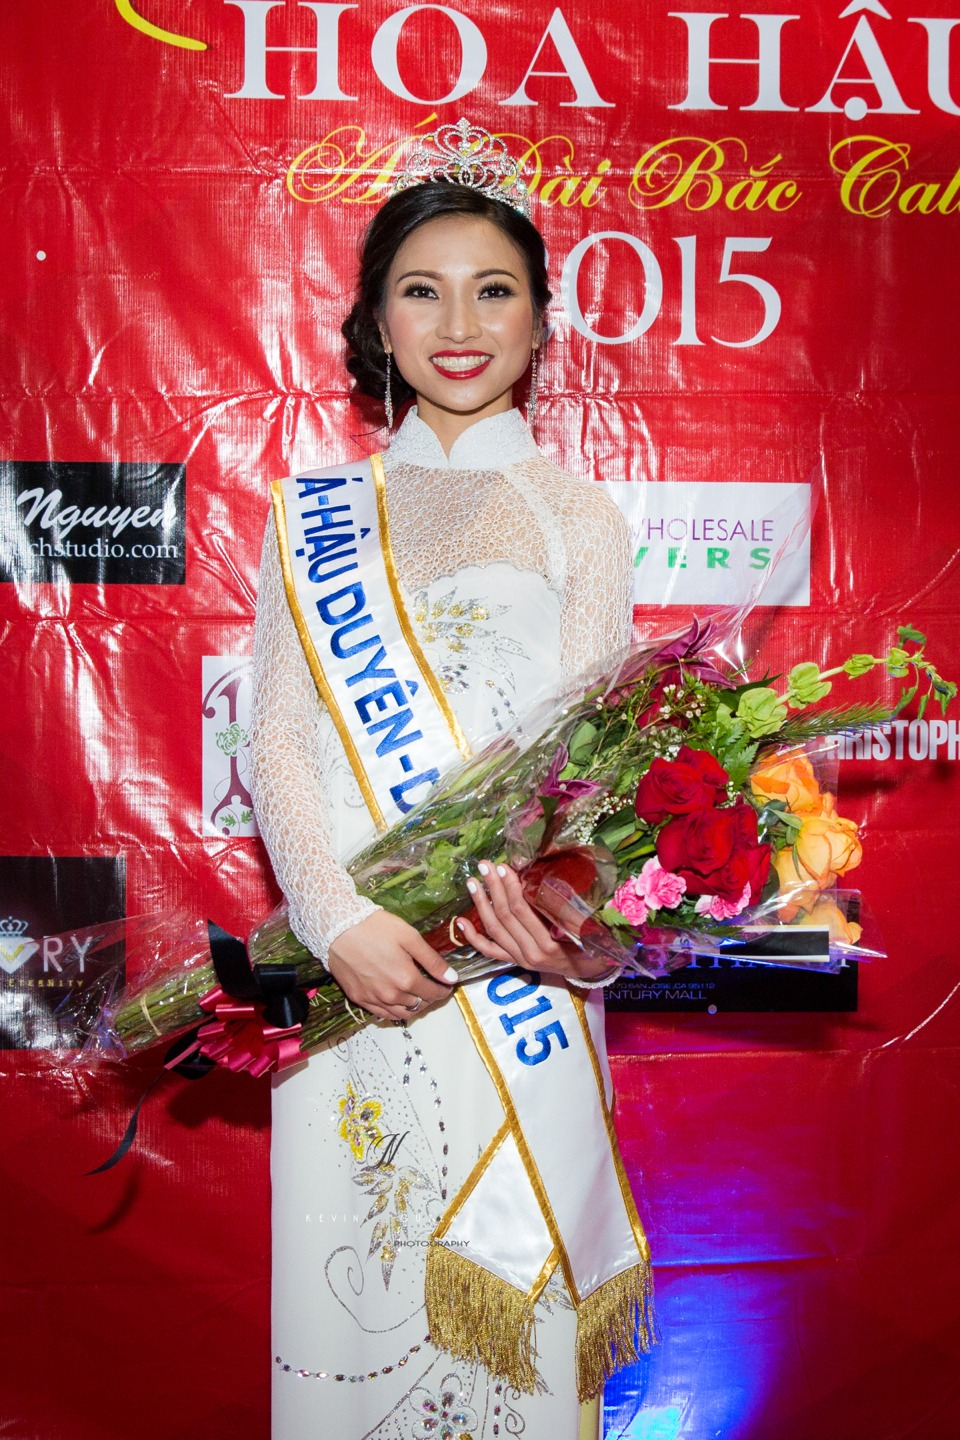 Pageant Day 2015 - Miss Vietnam of Northern California Pageant | Hoa Hậu Áo Dài Bắc Cali - Image 301